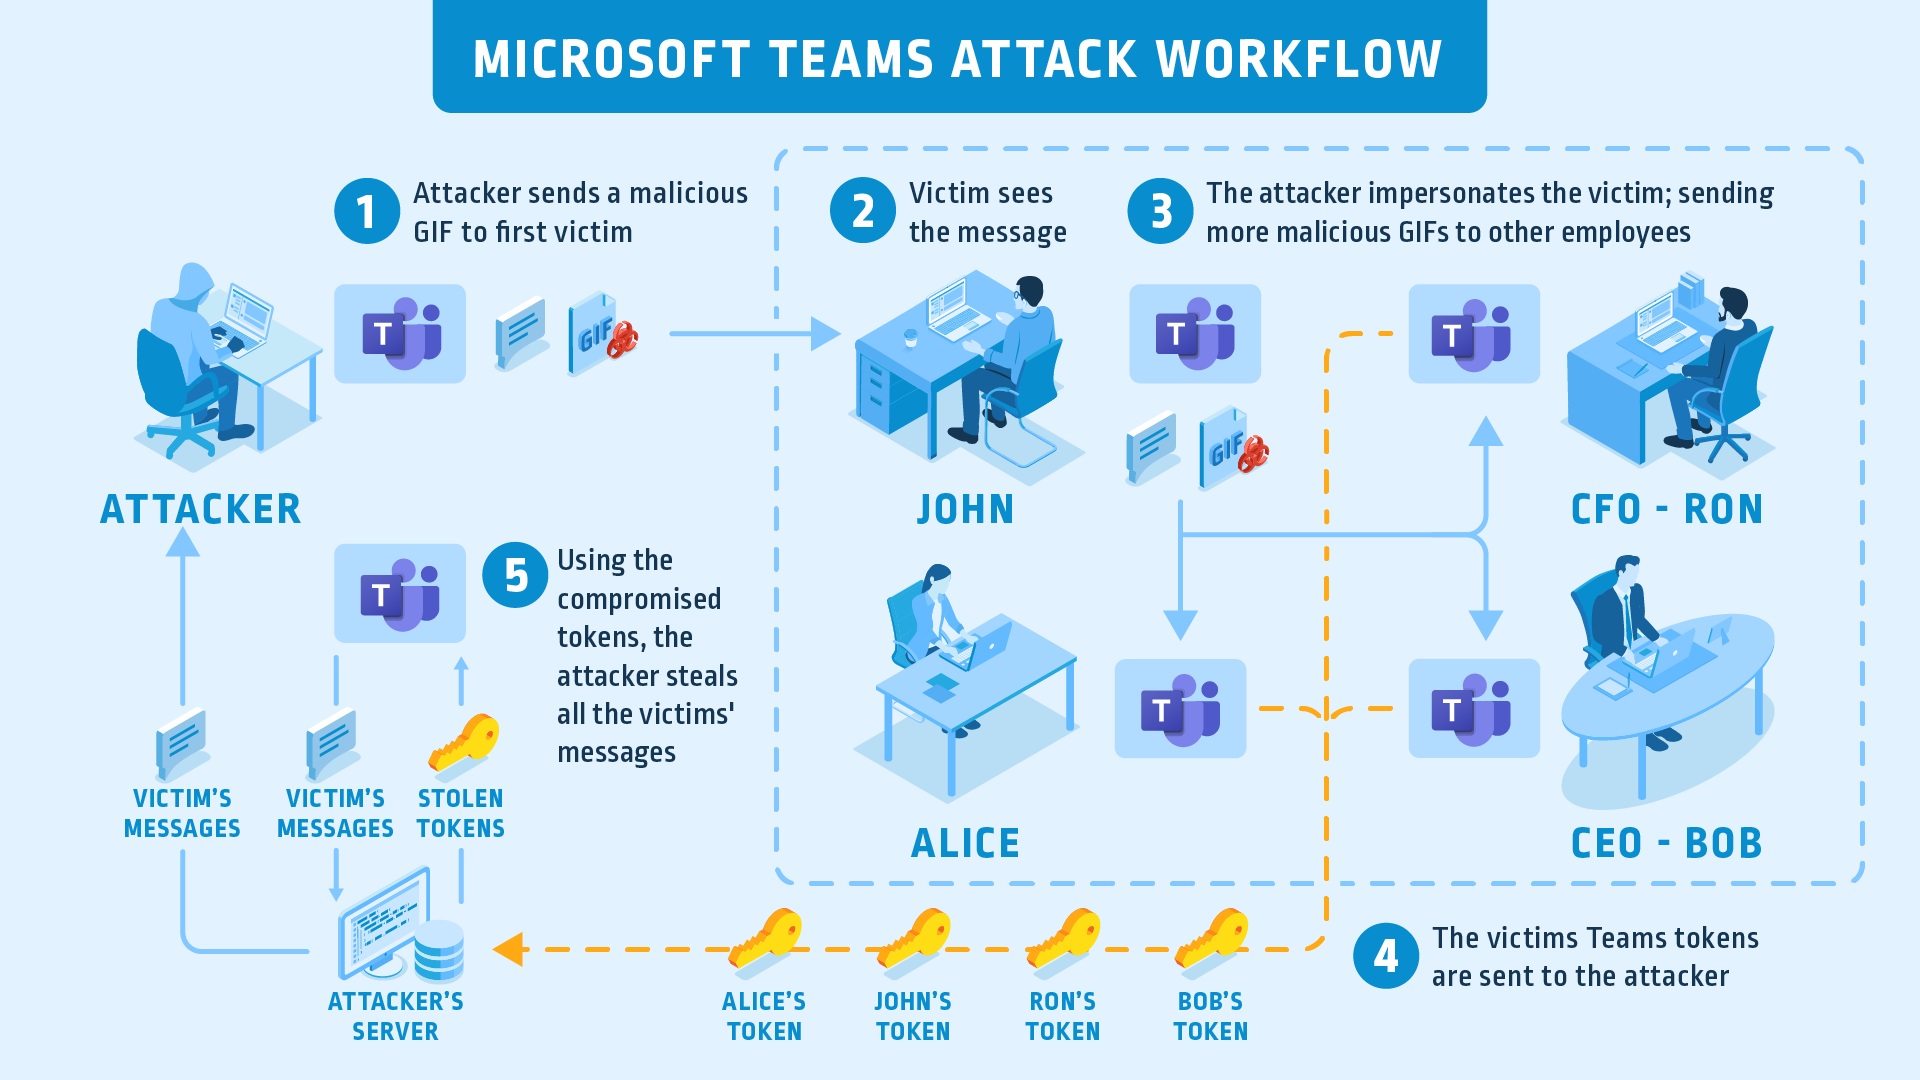 https://www.cyberark.com/wp-content/uploads/2020/04/MSFT-Teams-Attack-Flow_Graphic_FINAL.png